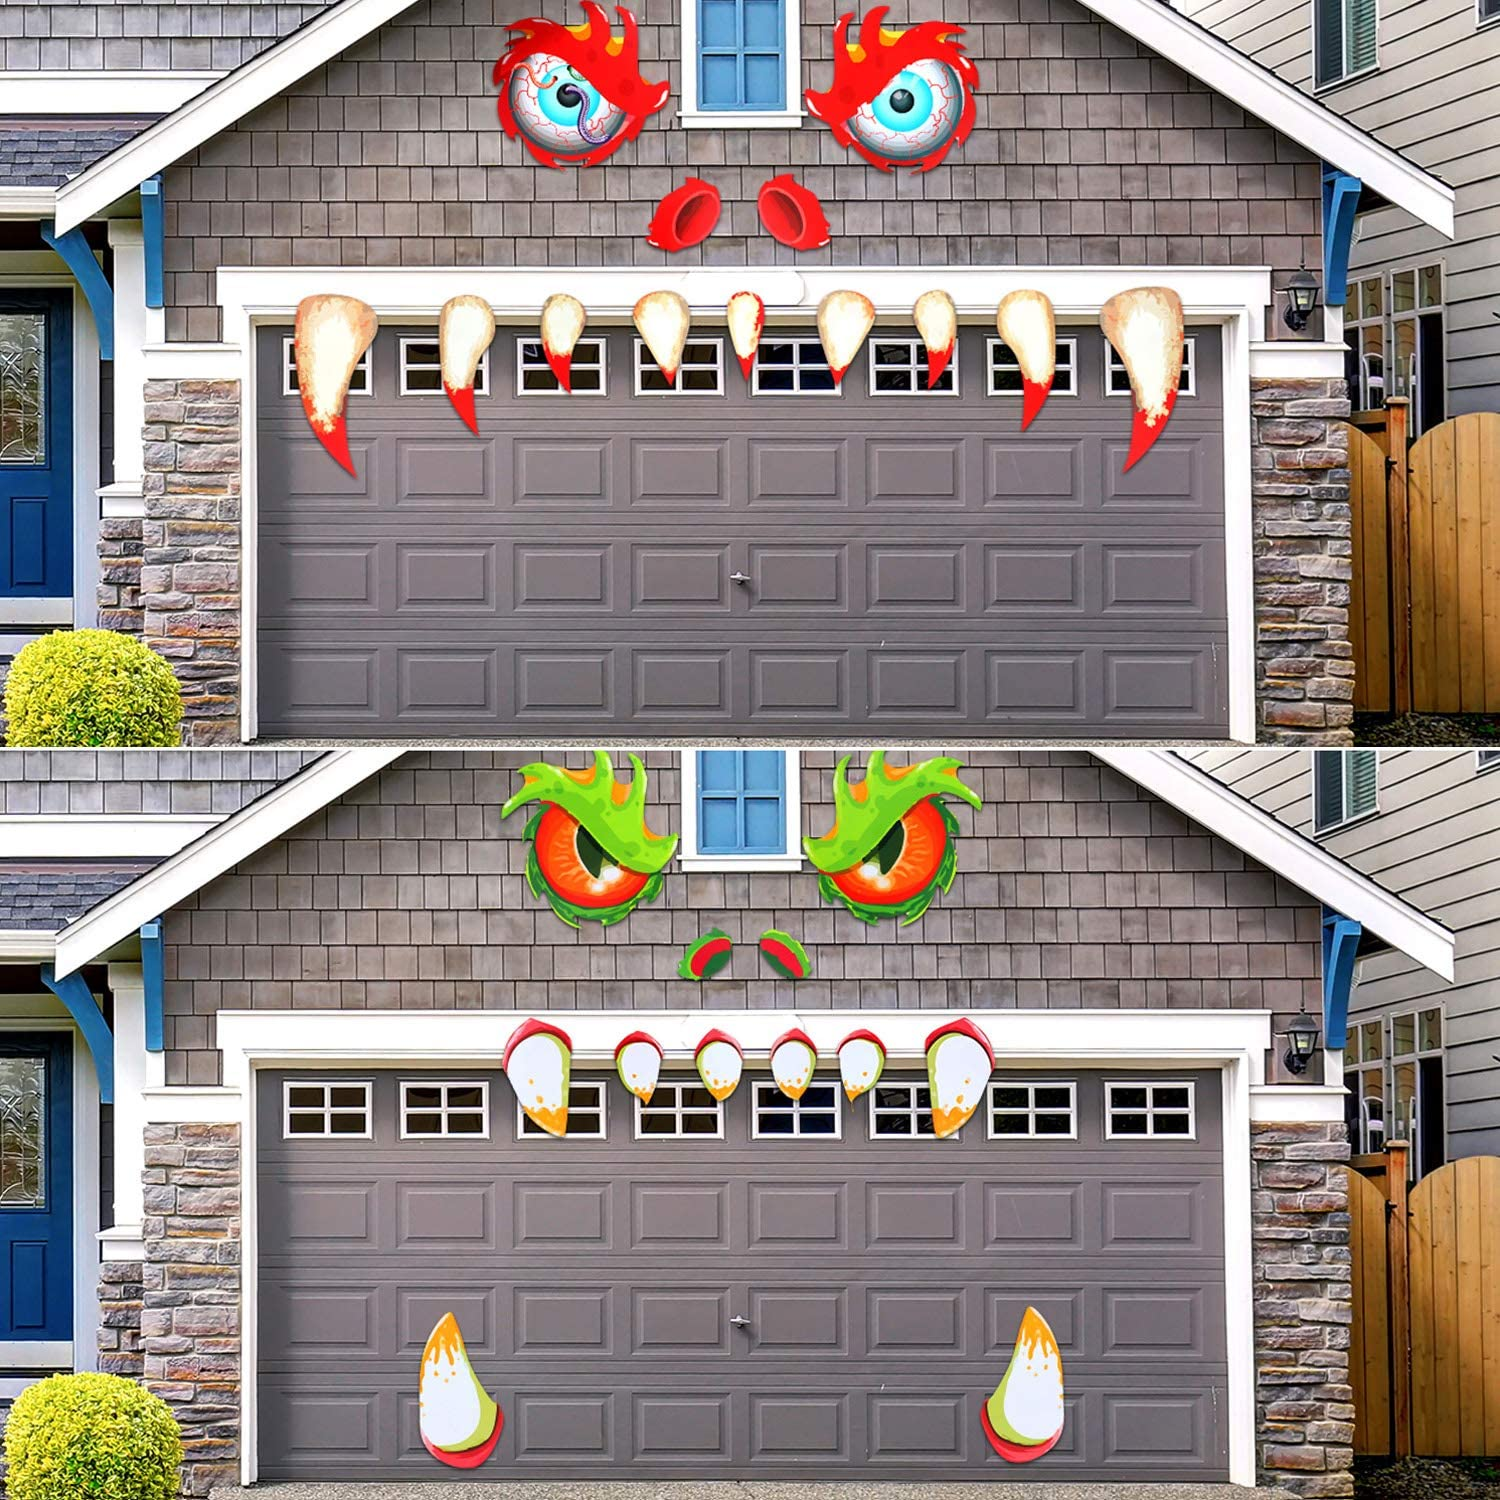 2 Sets Halloween Monster Face Decorations Outdoor Garage Archway Decor Haunted House Party Sticker Decoration with Eyes, Fangs, Nostrils for Halloween Supplies